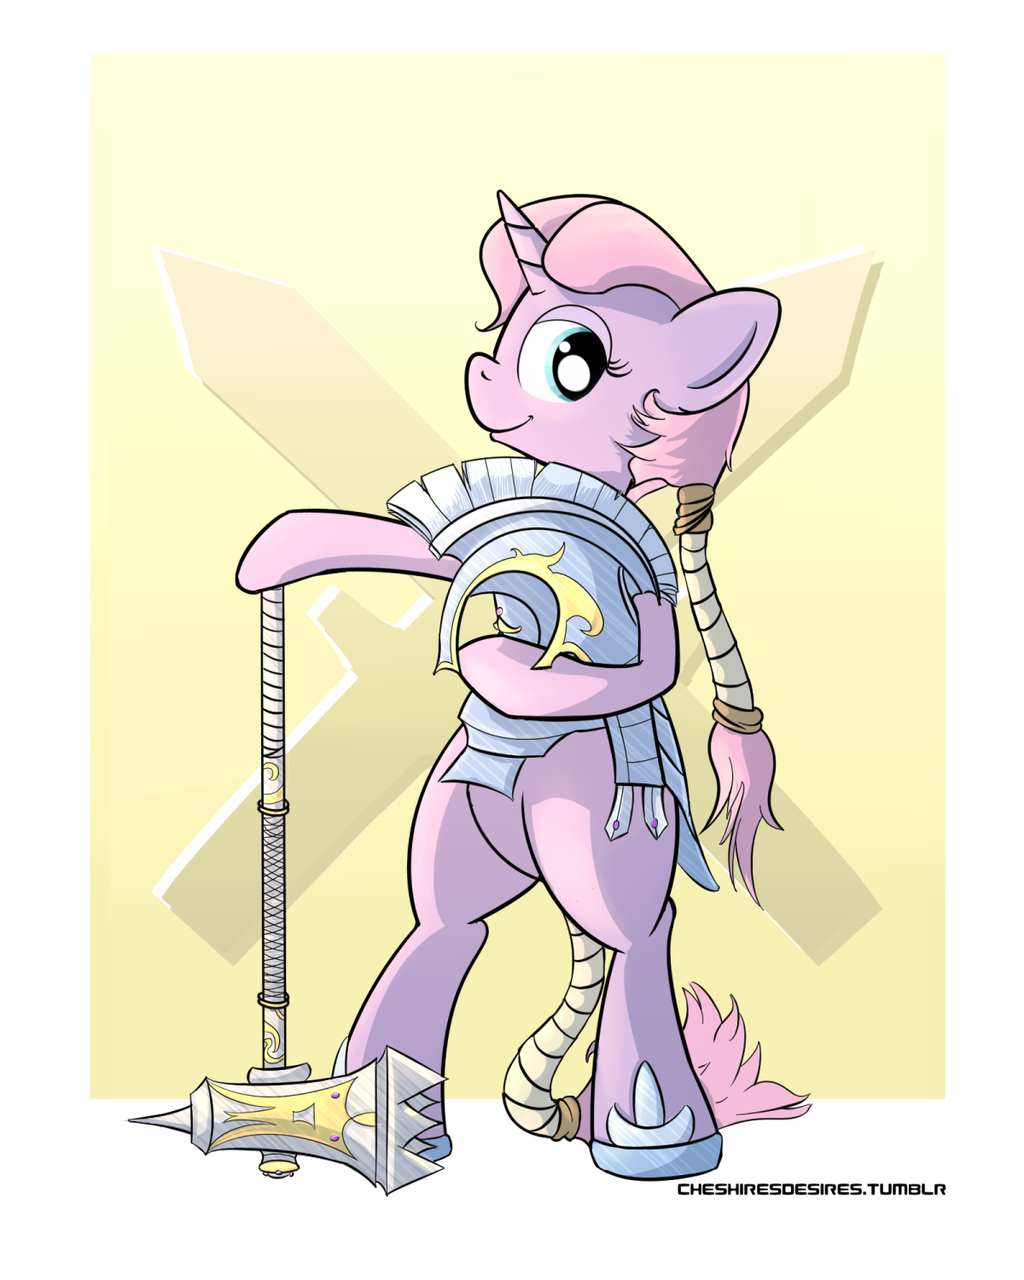 Royal crystal guard by Cheshiresdesires